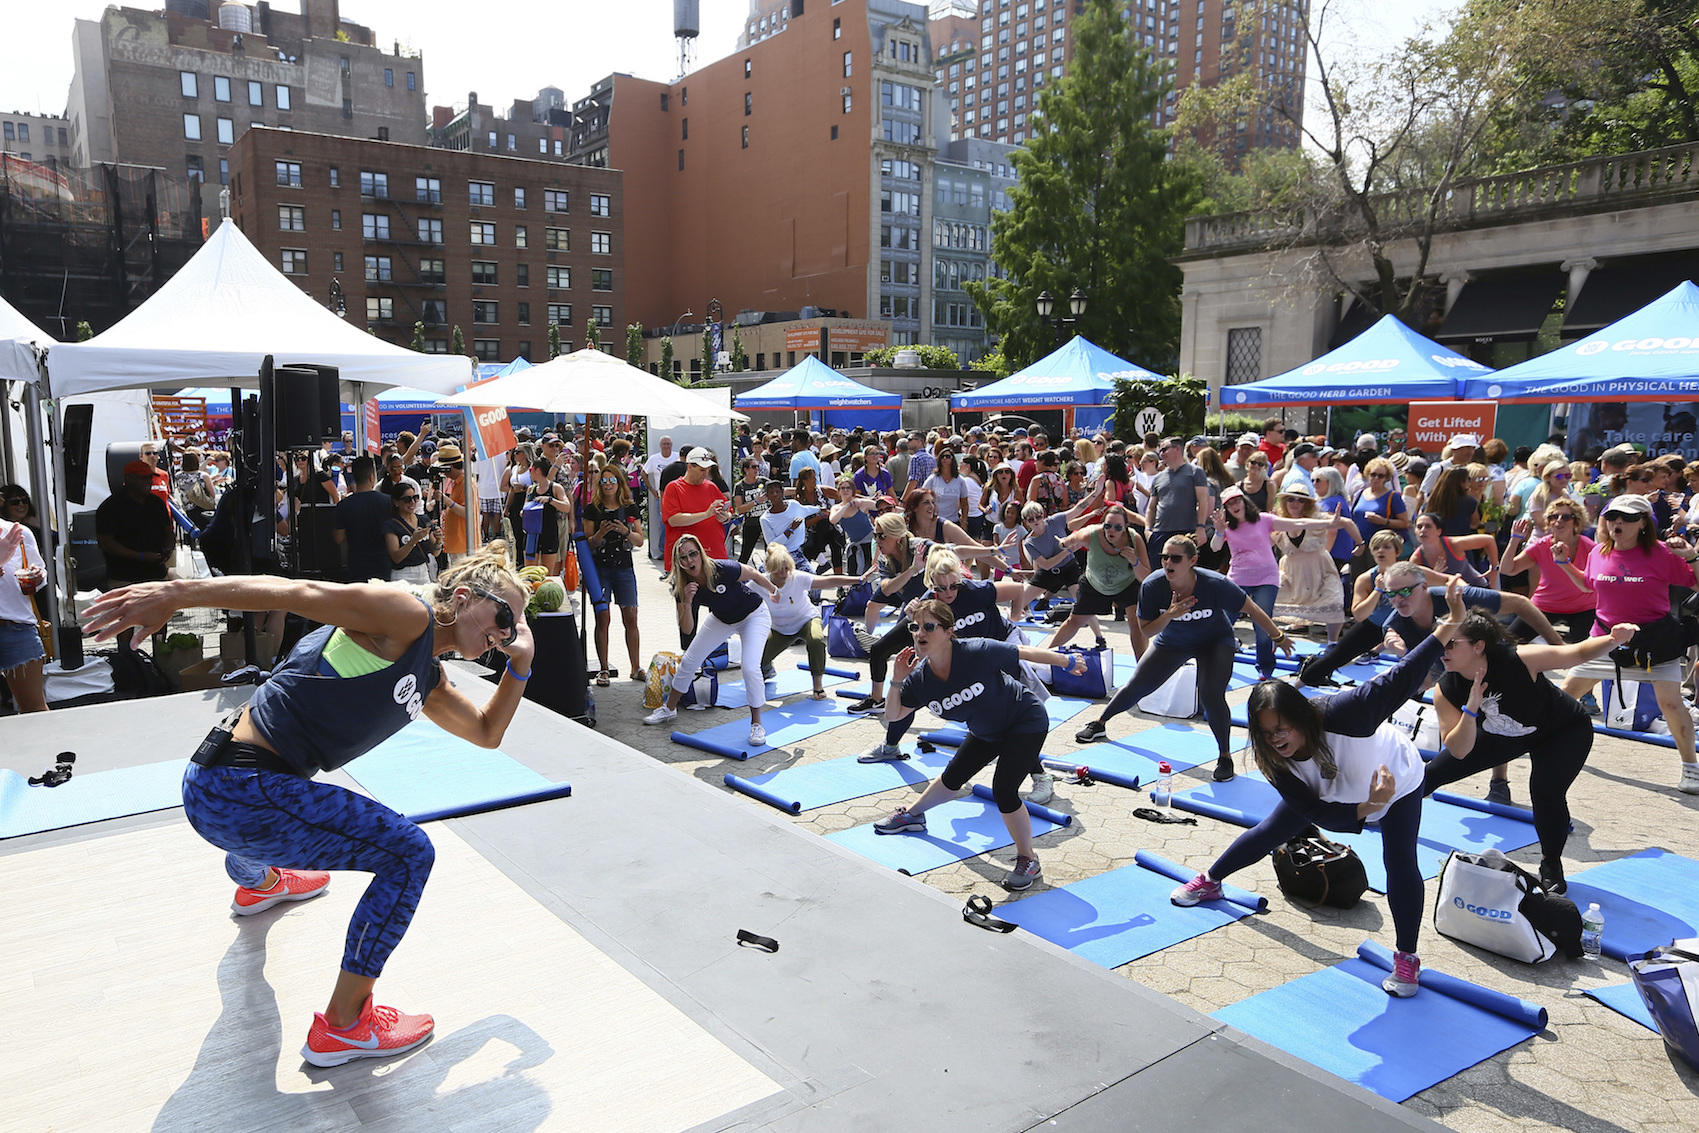 Self-Care And Body Positivity: How Companies Are Rebranding For